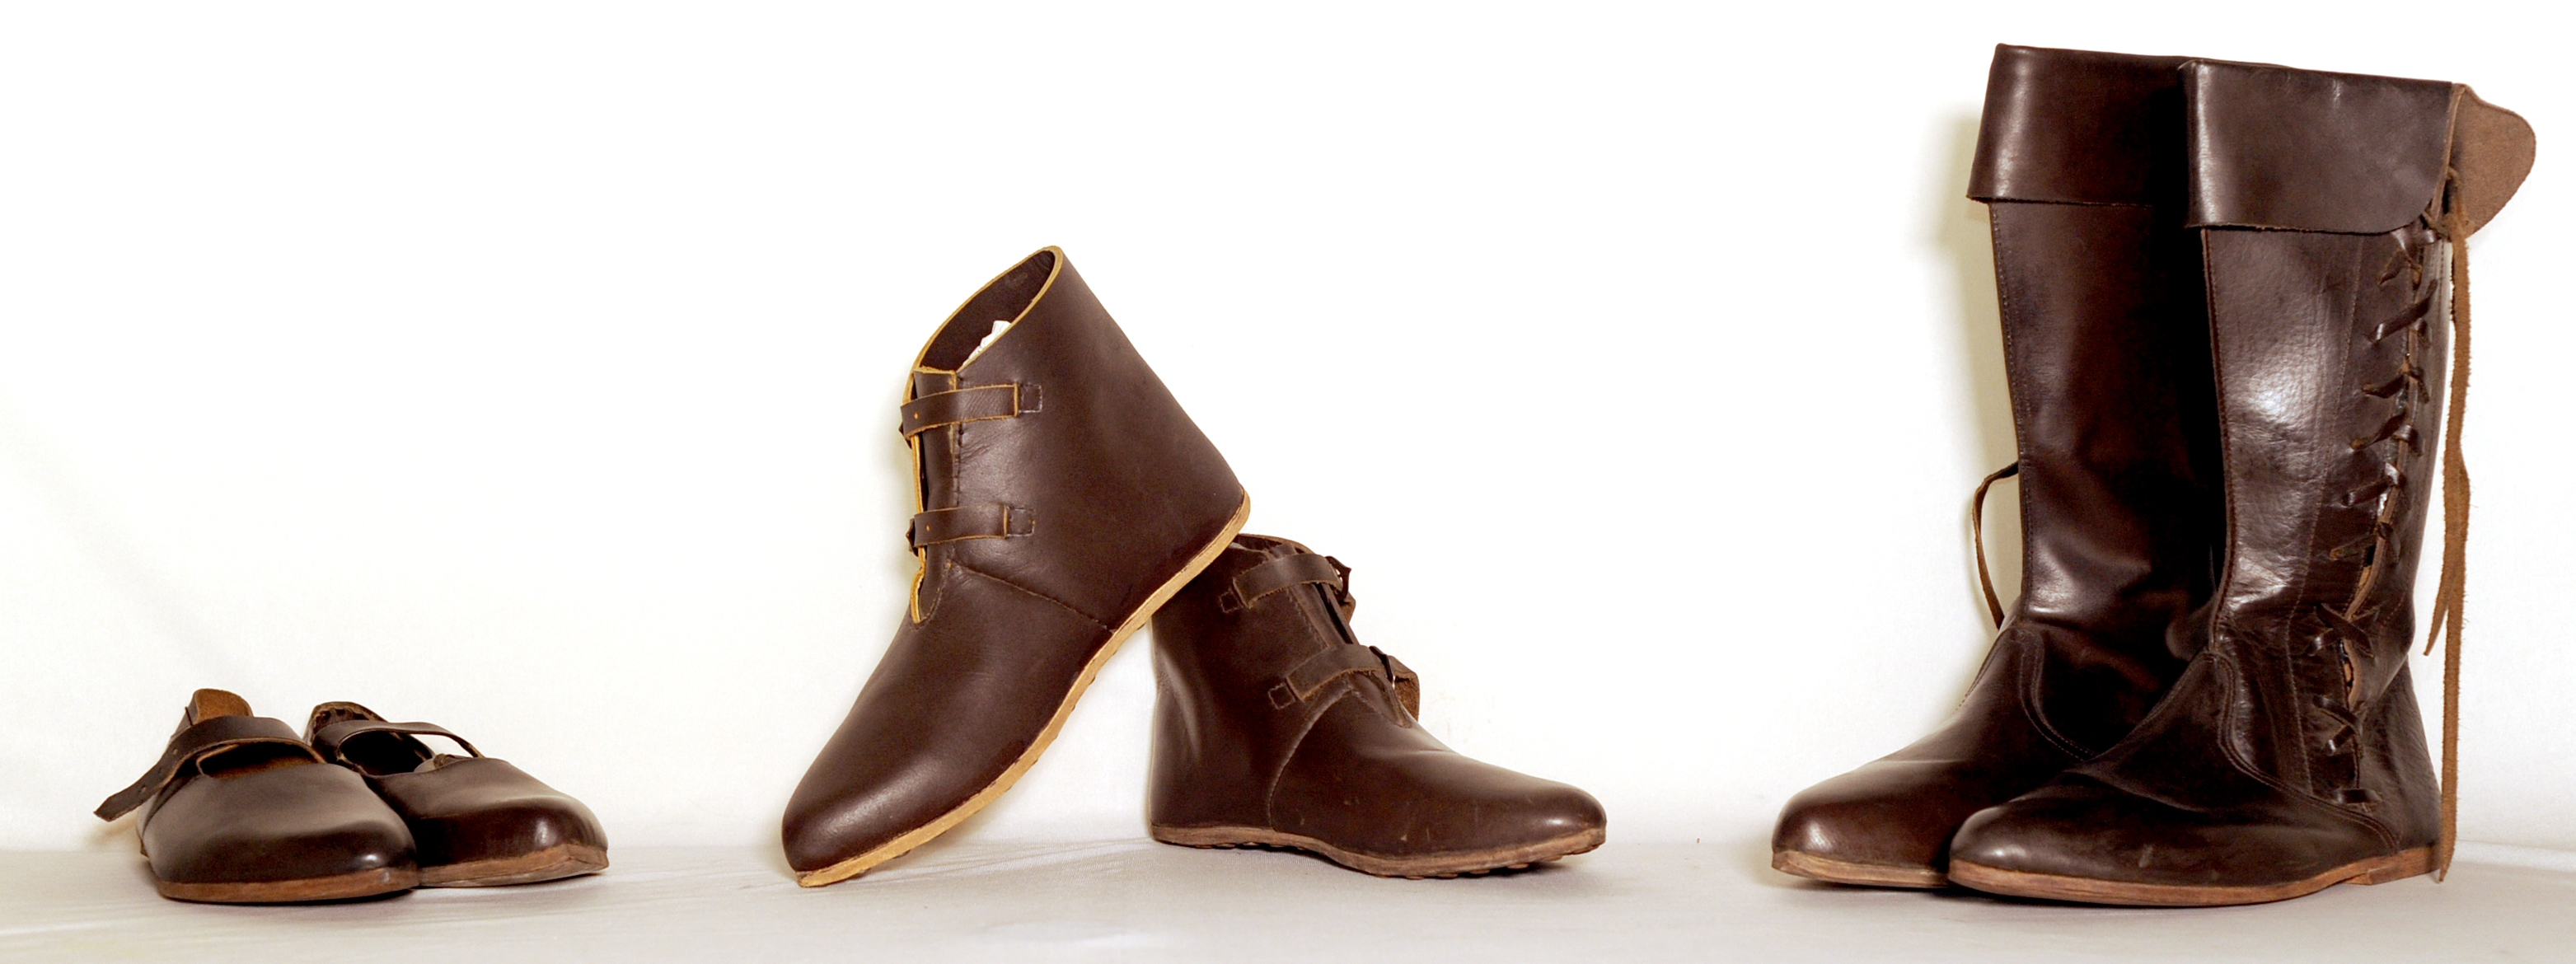 49e86bb975 Buy Medieval shoes - historical footwear, cut pattern, mens, leather ...